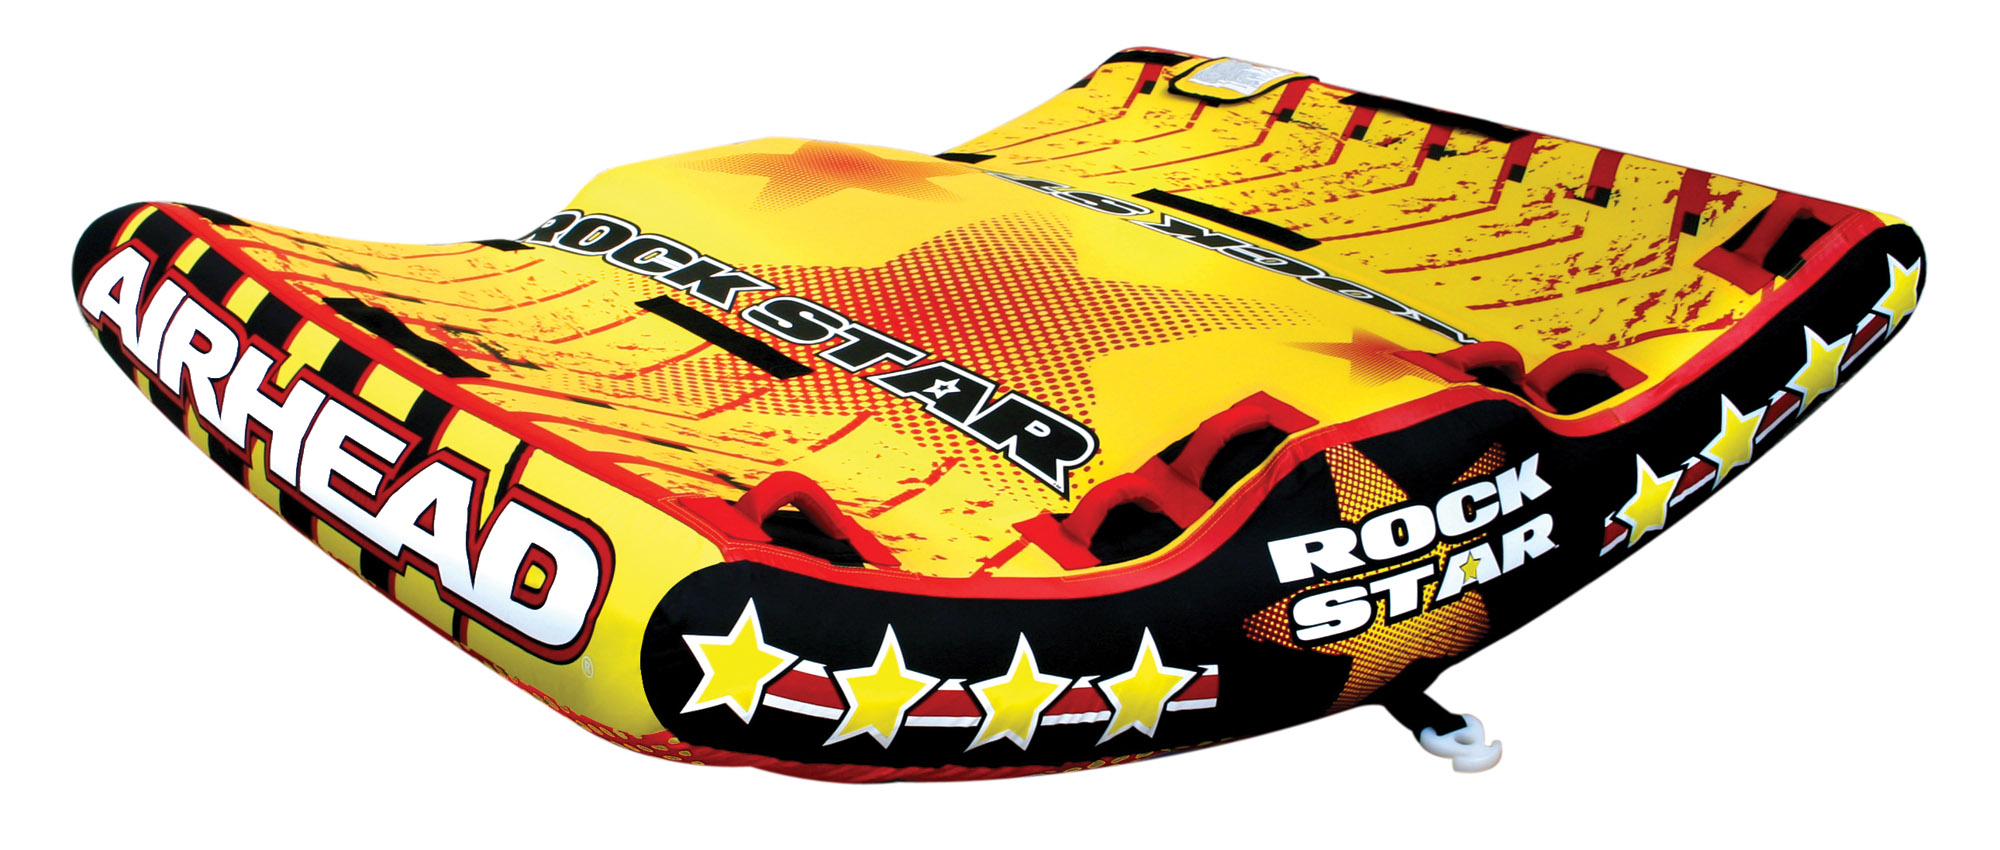 ROCK STAR Towable Tube by AIRHEAD SPORTS GROUP